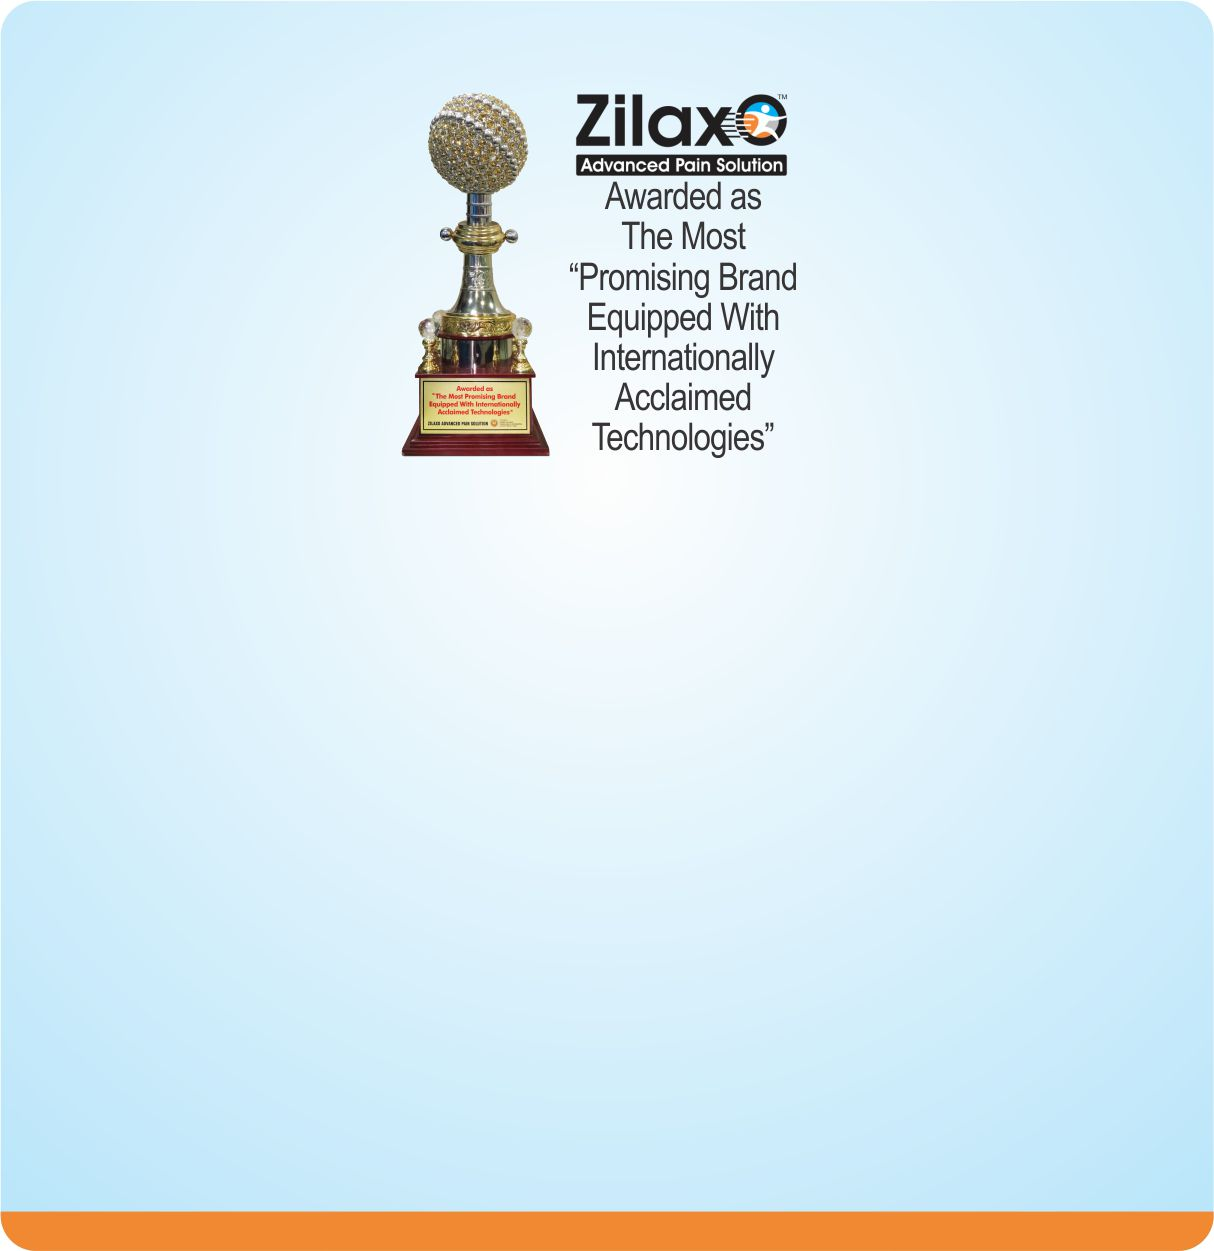 Zilaxo Advanced Pain Solutions